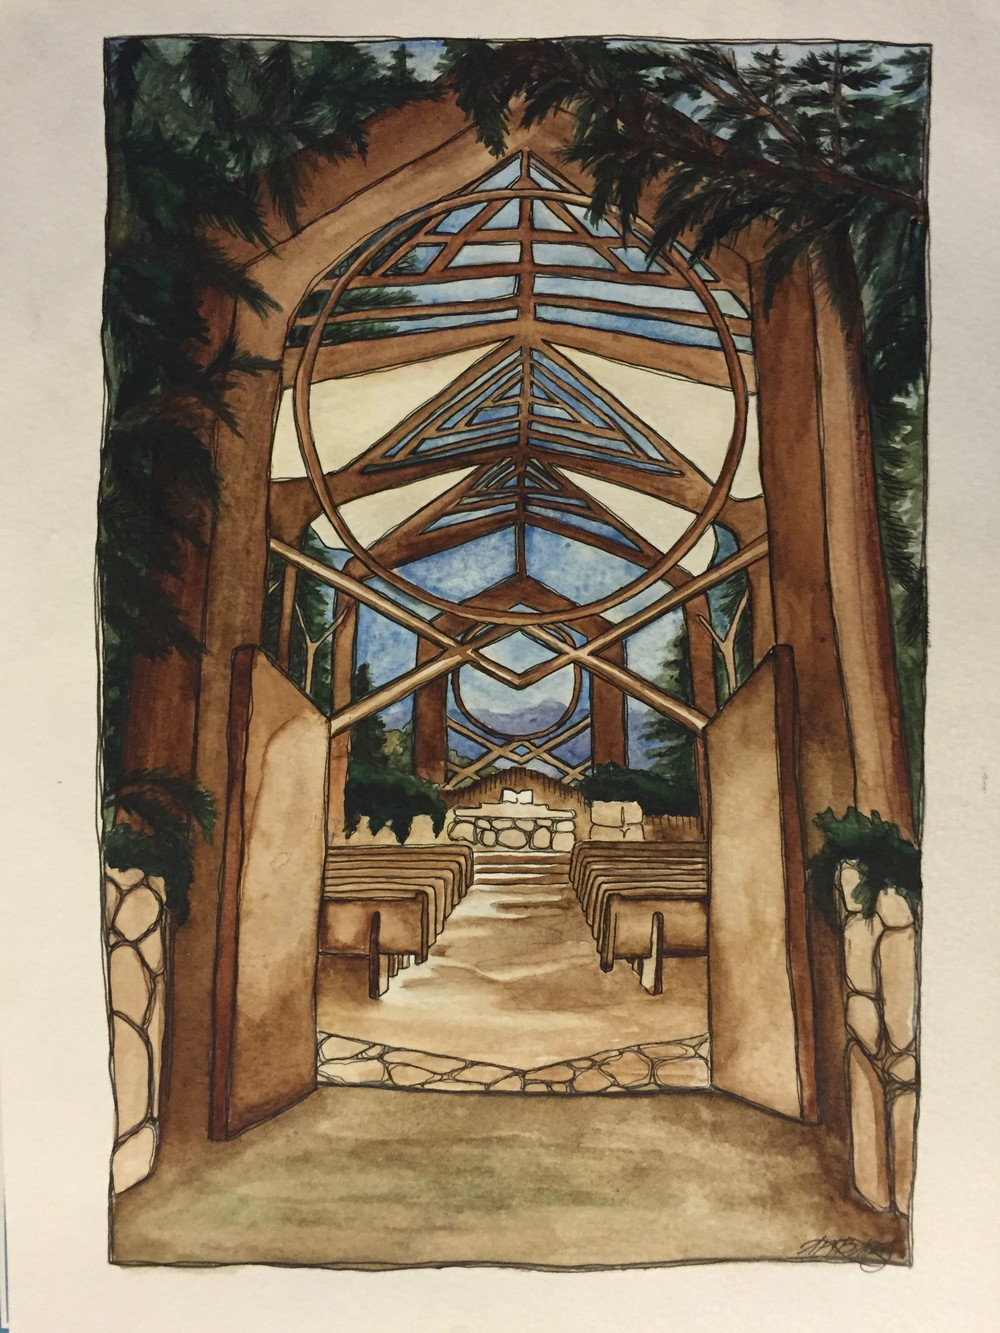 Wayfarer's Chapel. 9 in x 12 in, Watercolor & Ink, 2014